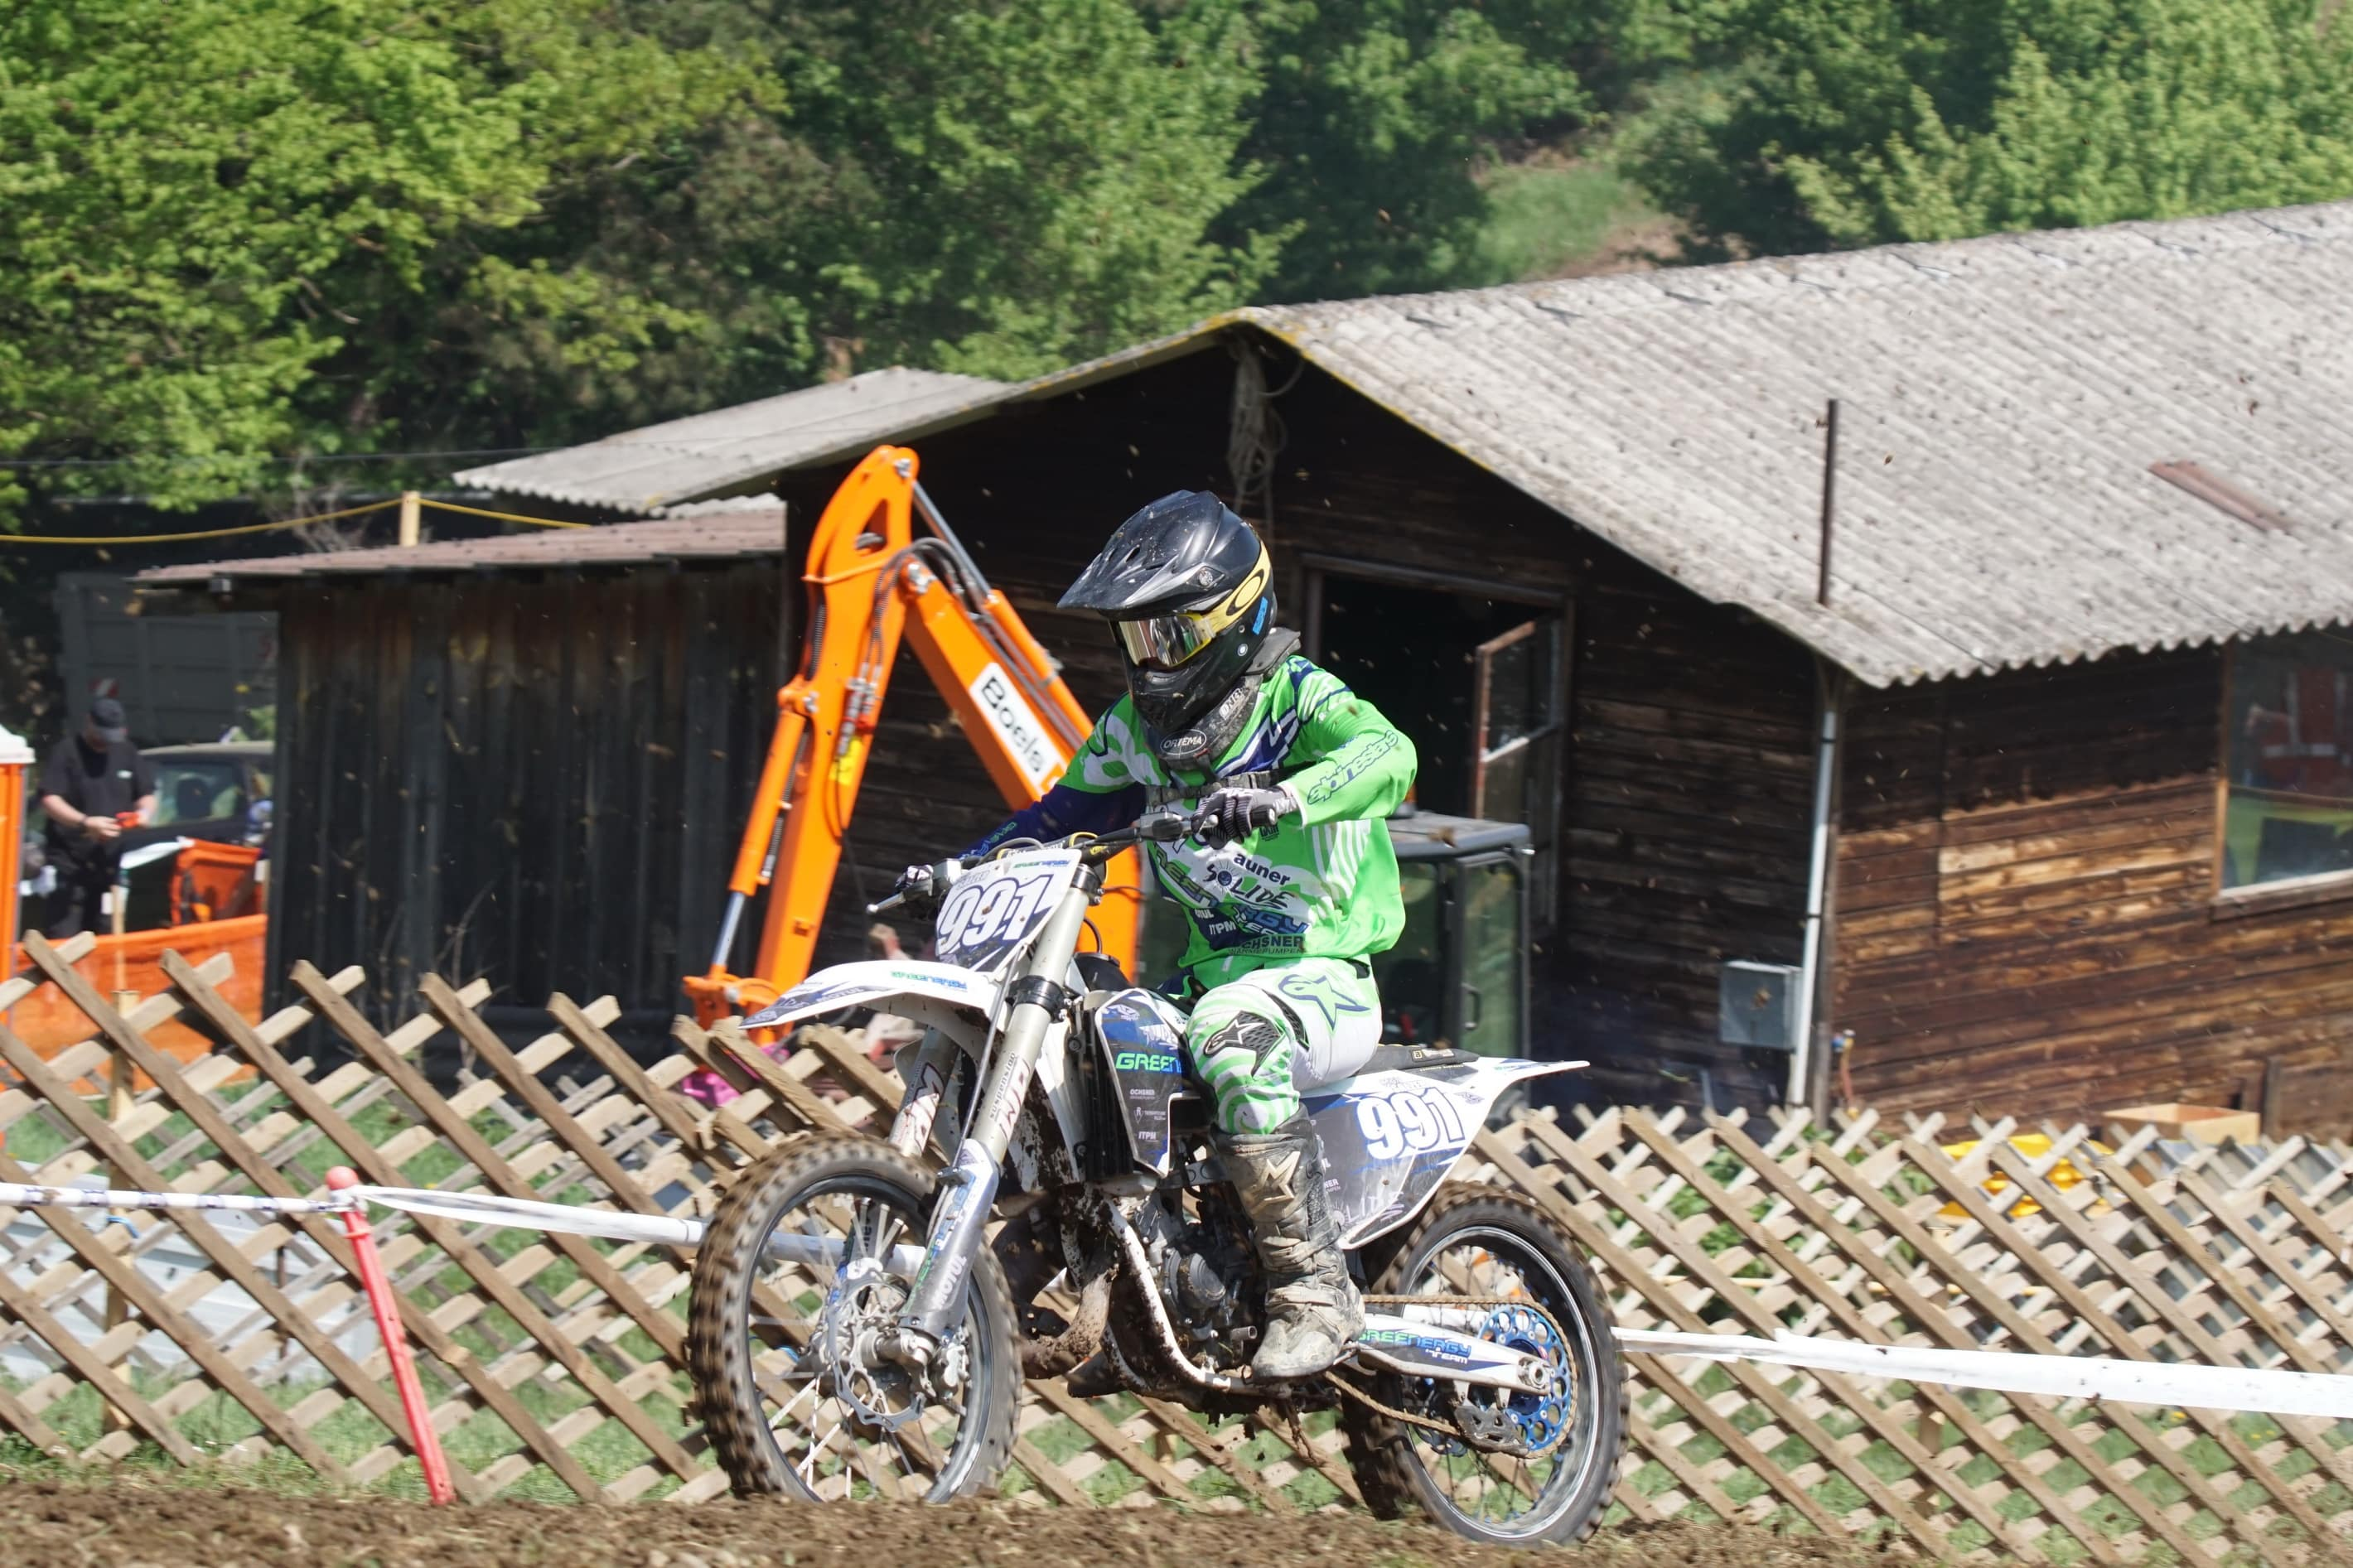 DSC 216_Moto Cross Sittendorf Teil1 am 29.04.2018